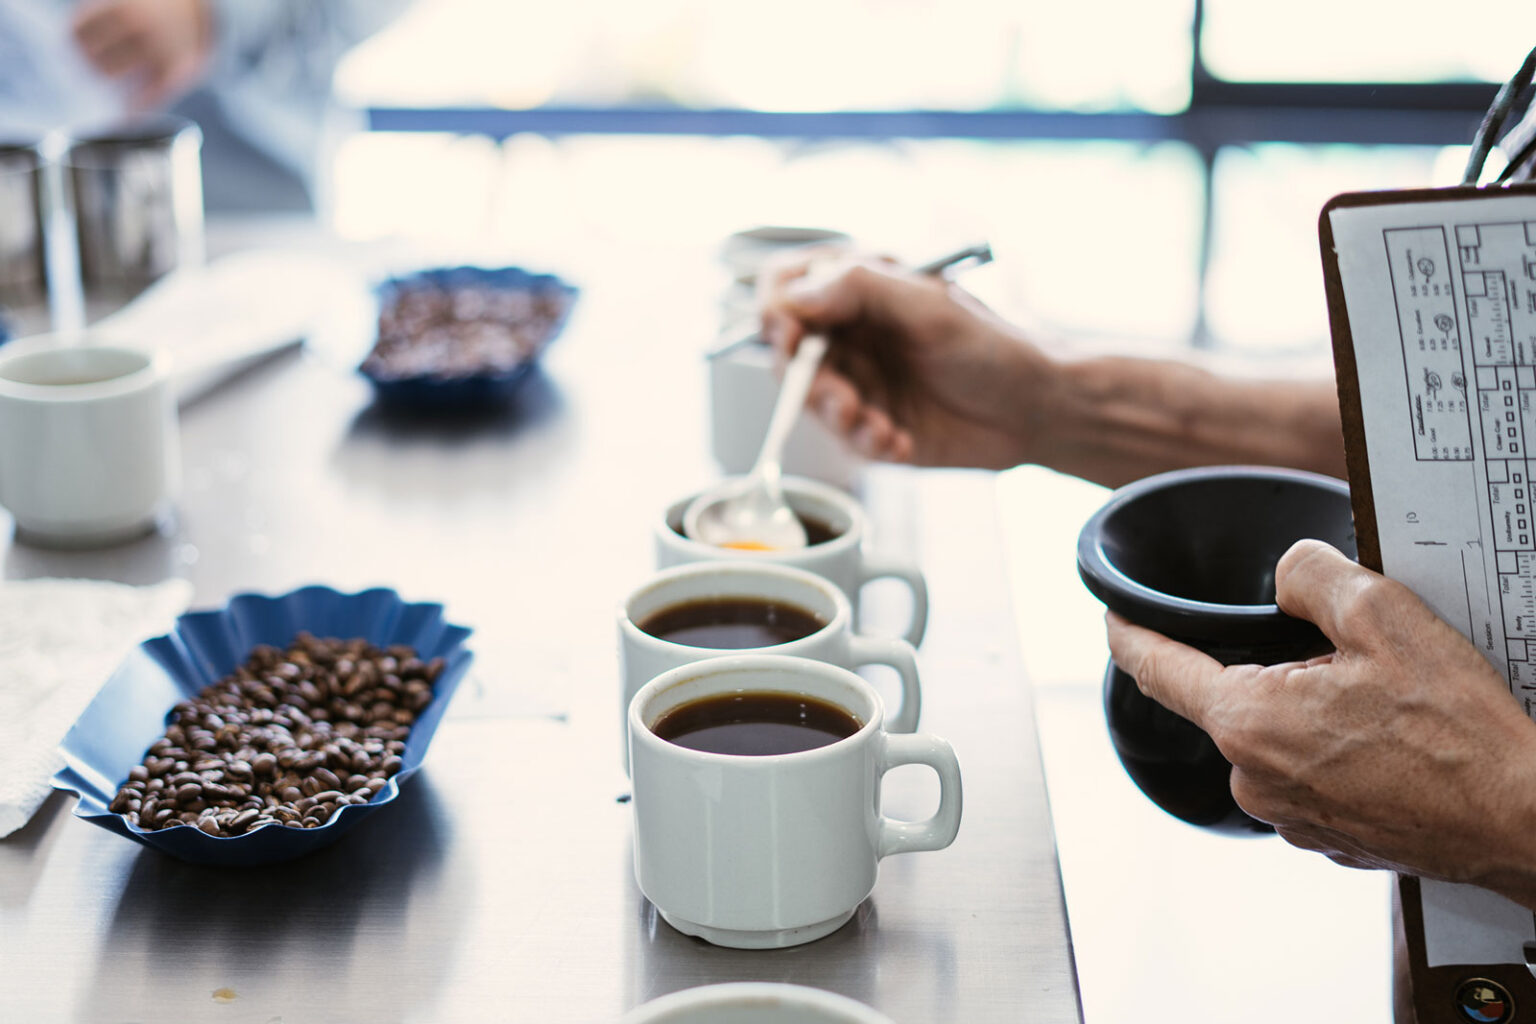 GCC constantly cups its coffee to analyze what is going right (and wrong) on the farms and partner producers' farms.